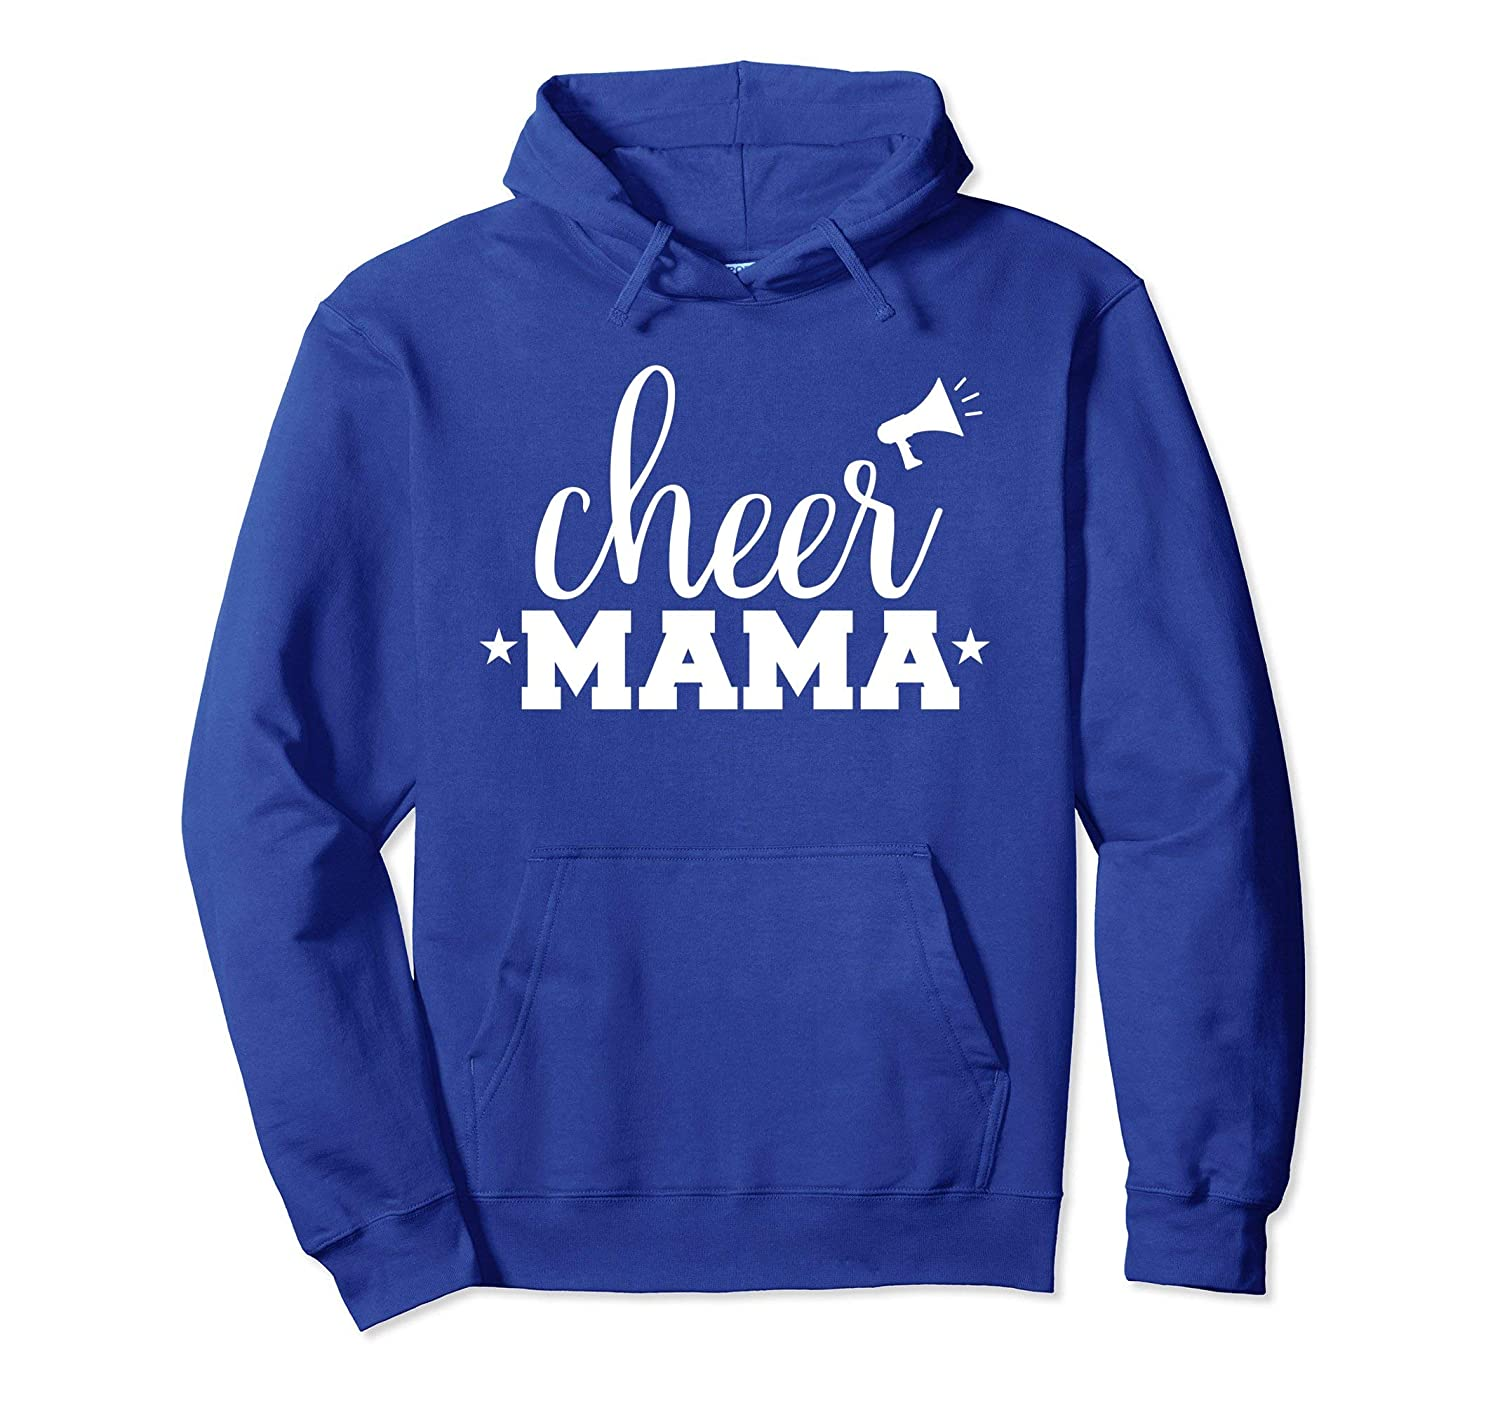 Cheer Mama Cute Hoodie for Sports Mom Winter Clothing-Awarplus